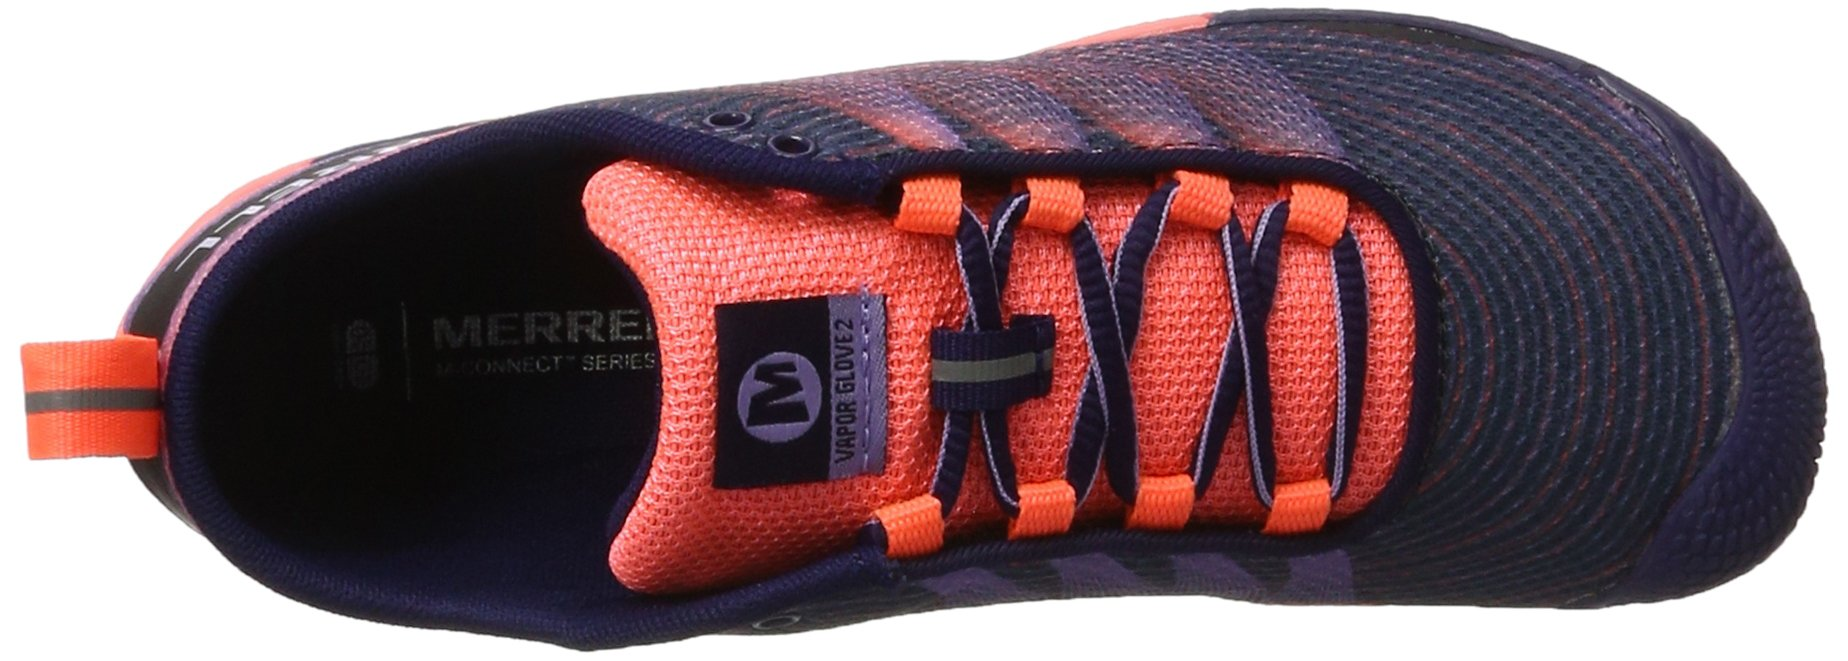 Merrell Women's Vapor Glove 2 Trail Runner, Liberty, 6 M US by Merrell (Image #8)